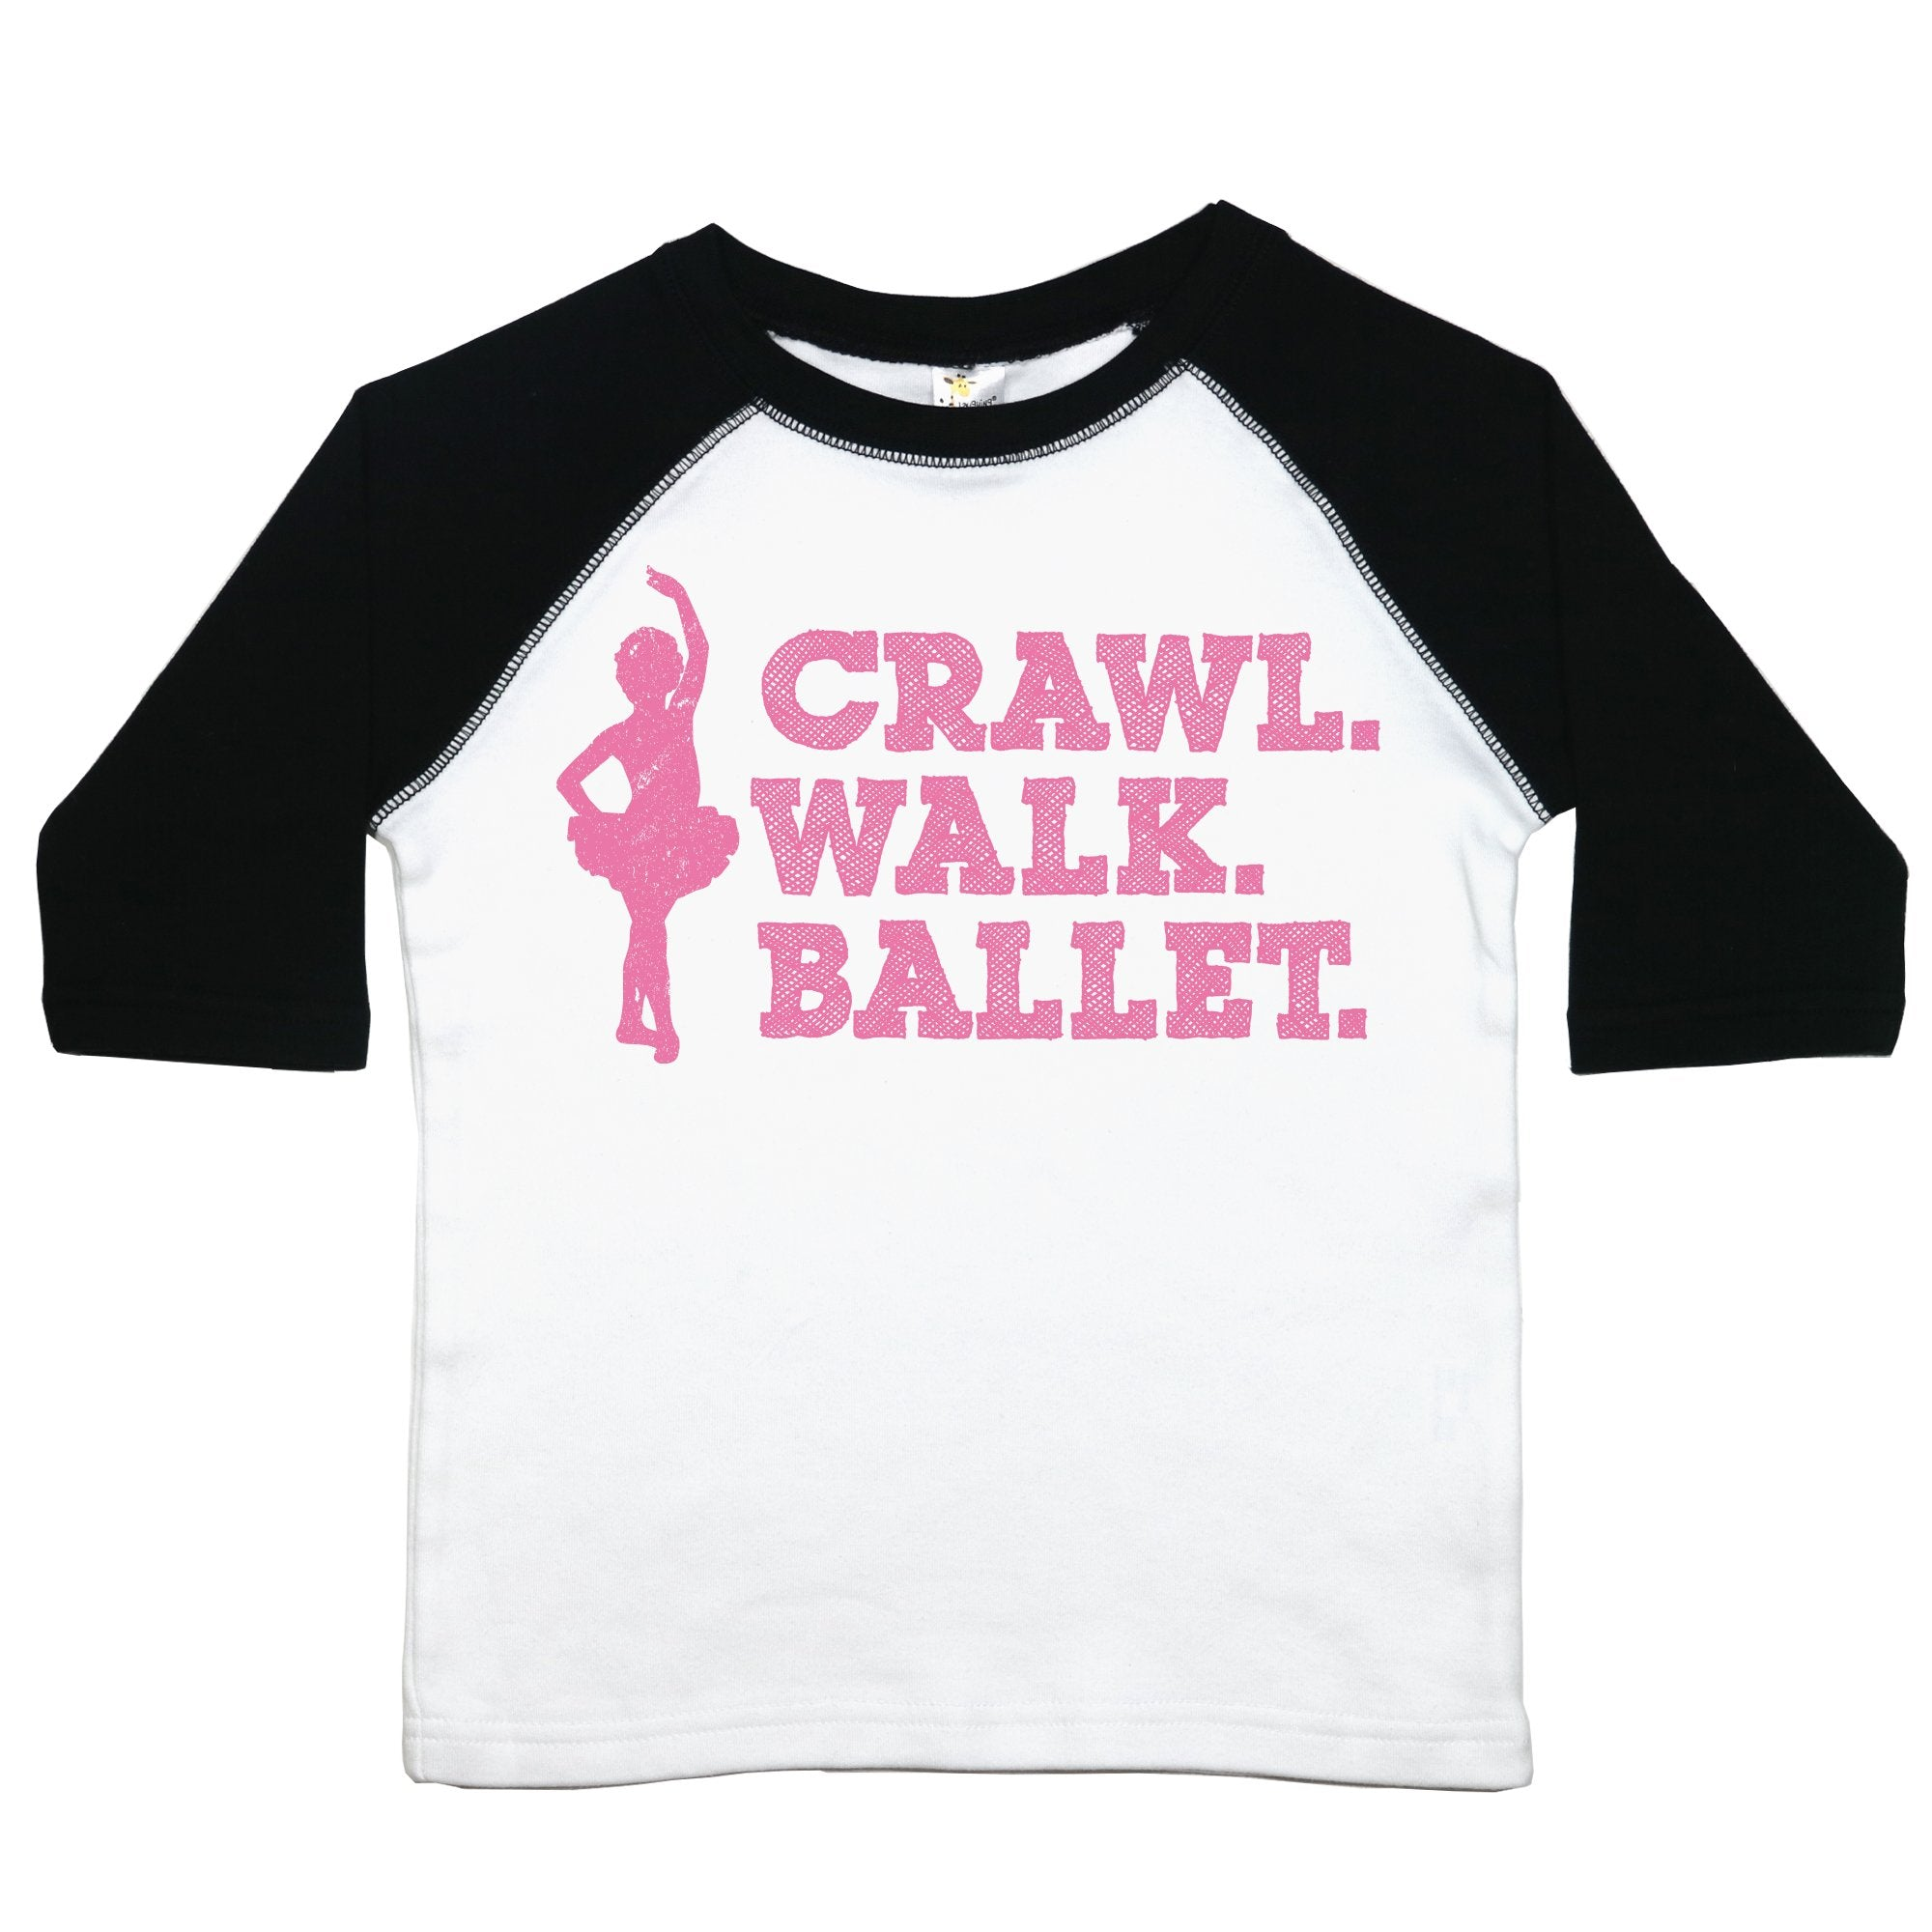 "a toddler tee with the text ""Crawl. Walk. Ballet."" stacked on top of one another in pink text with the silhouette of a ballerina next to it"